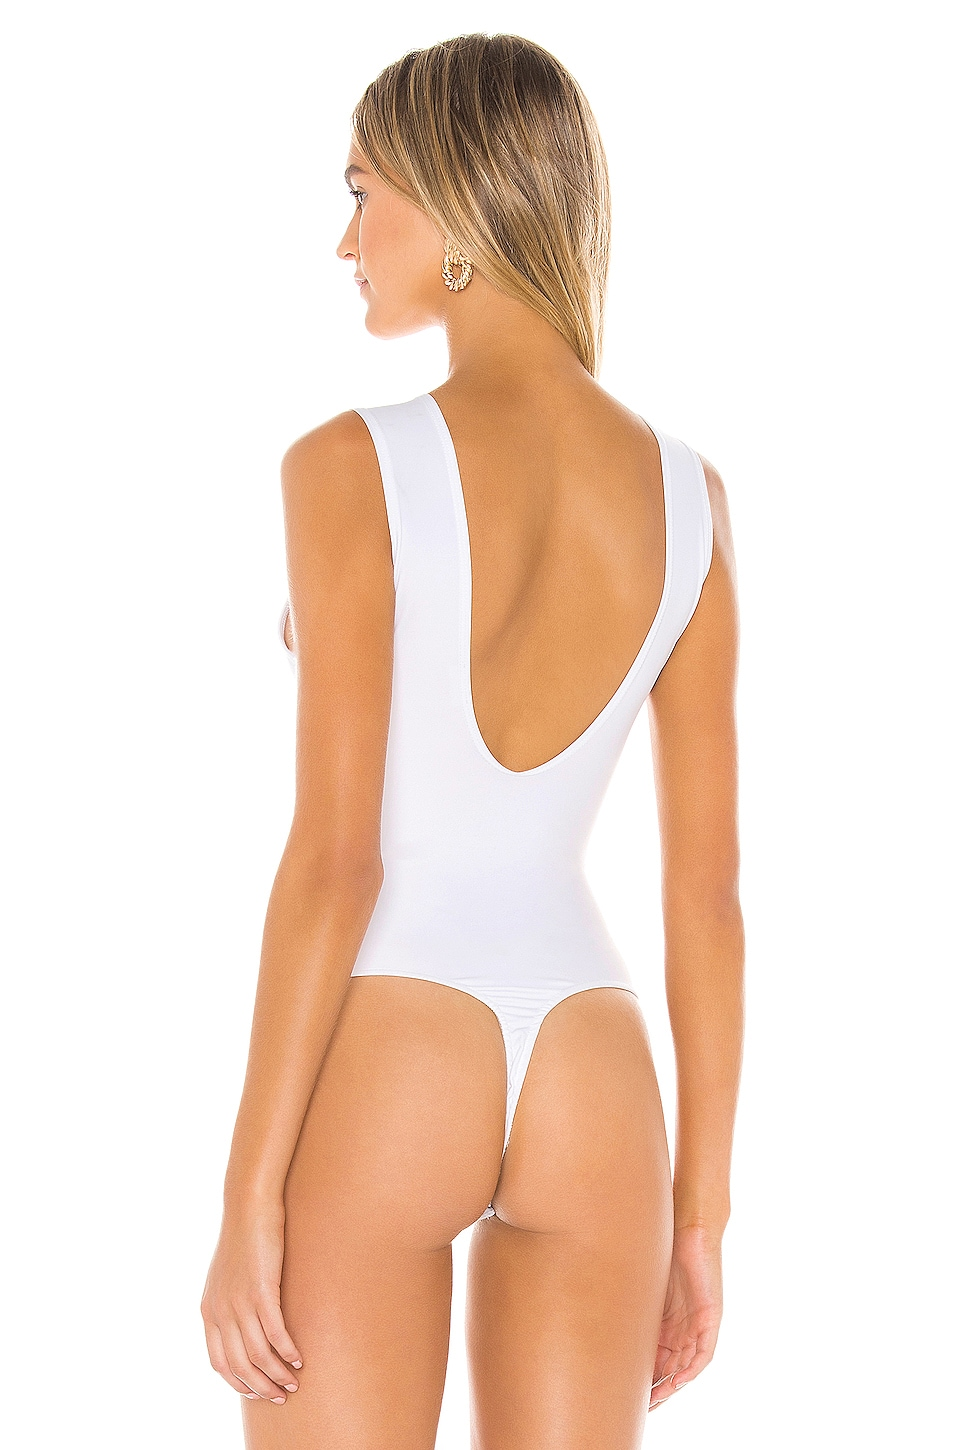 Keep It Slick Bodysuit, view 4, click to view large image.